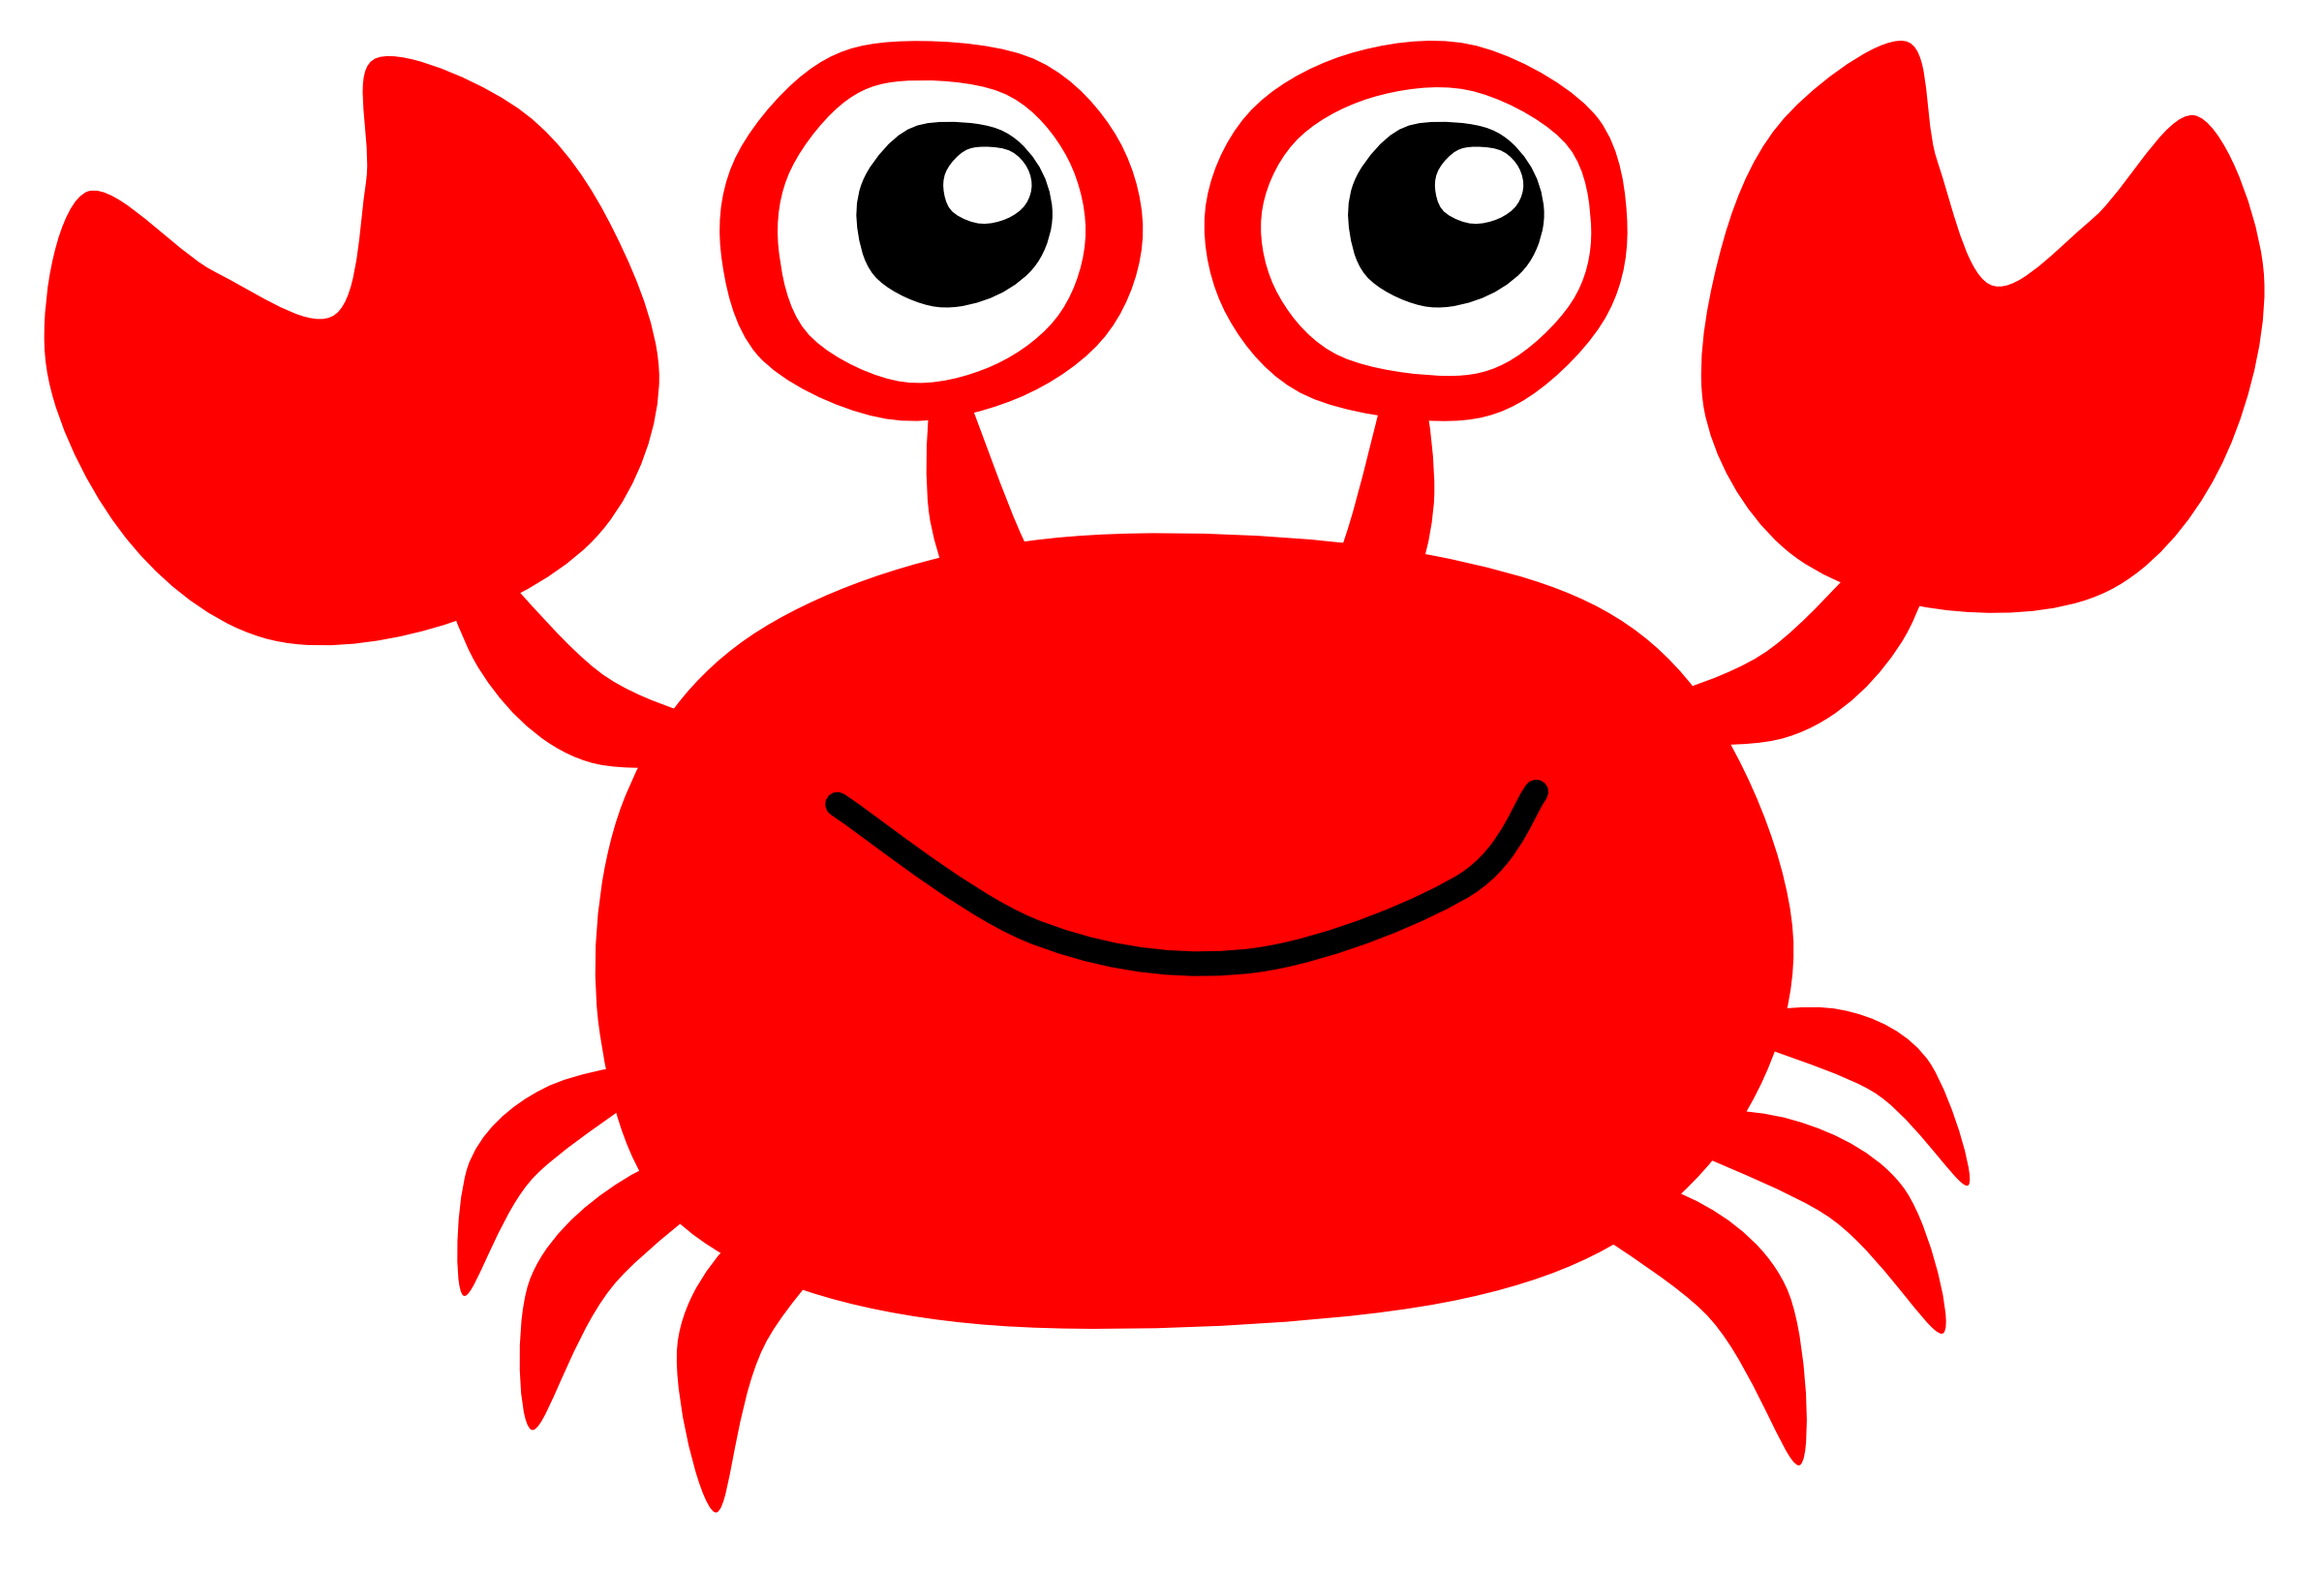 seafood graphic royalty. Lobster clipart snow crab png transparent library